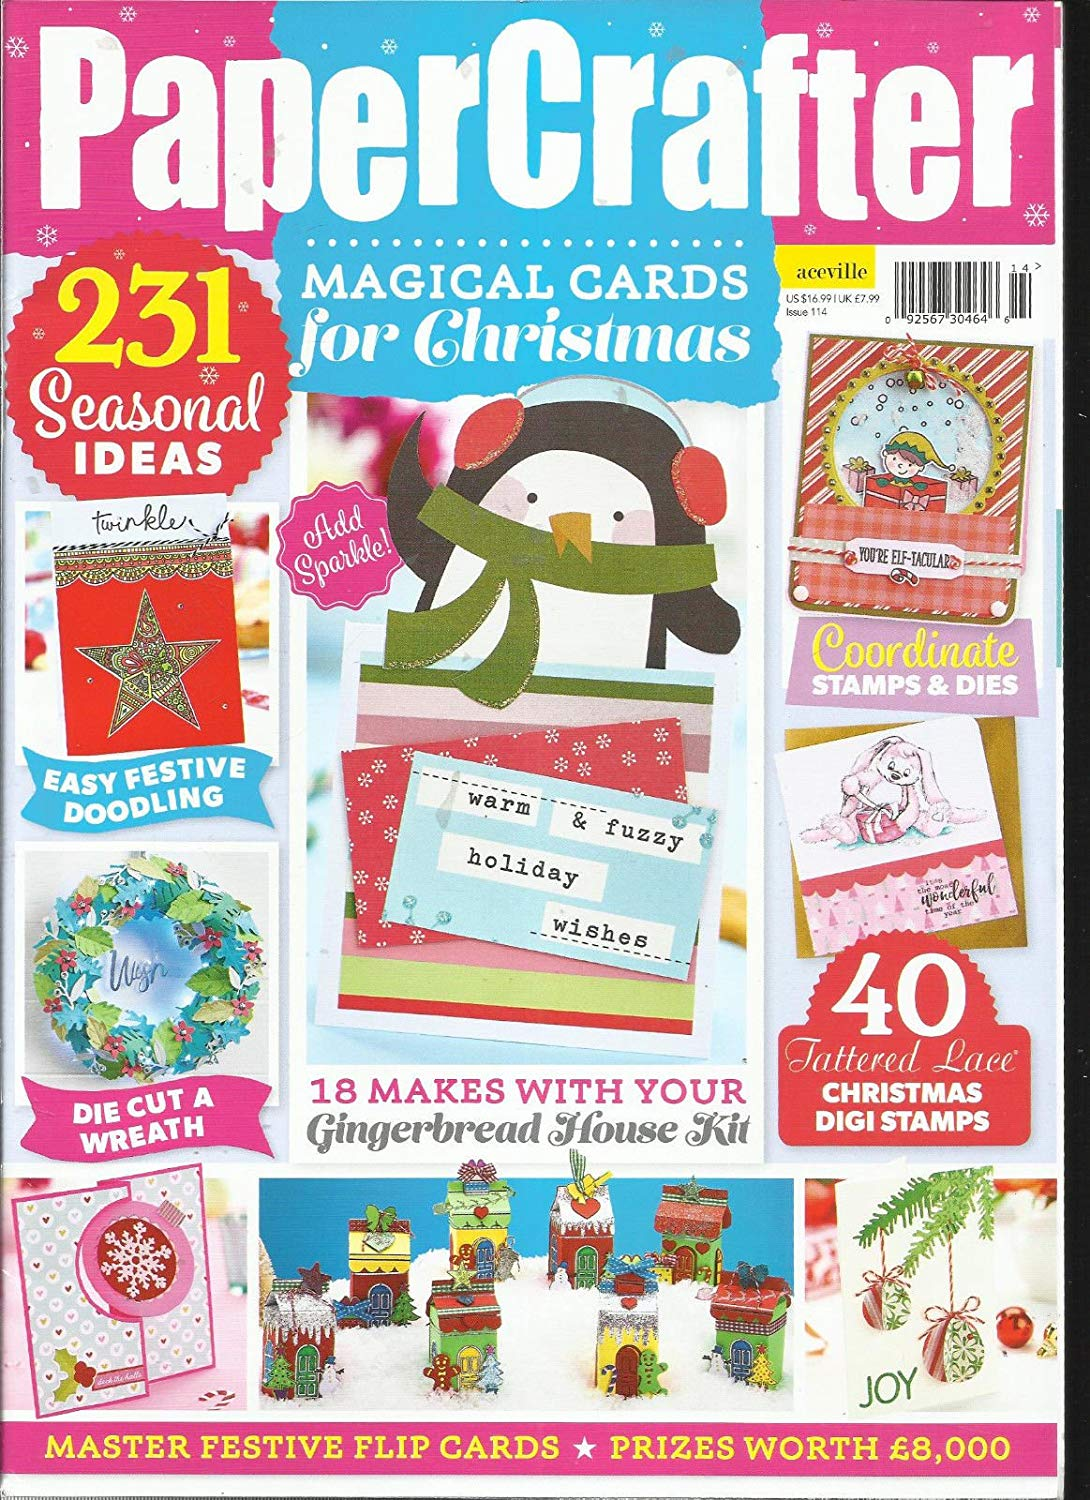 PAPER CRAFTER ISSUE, 2017# 114 FREE GIFTS OR CARD KIT ARE NOT INCLUDED.